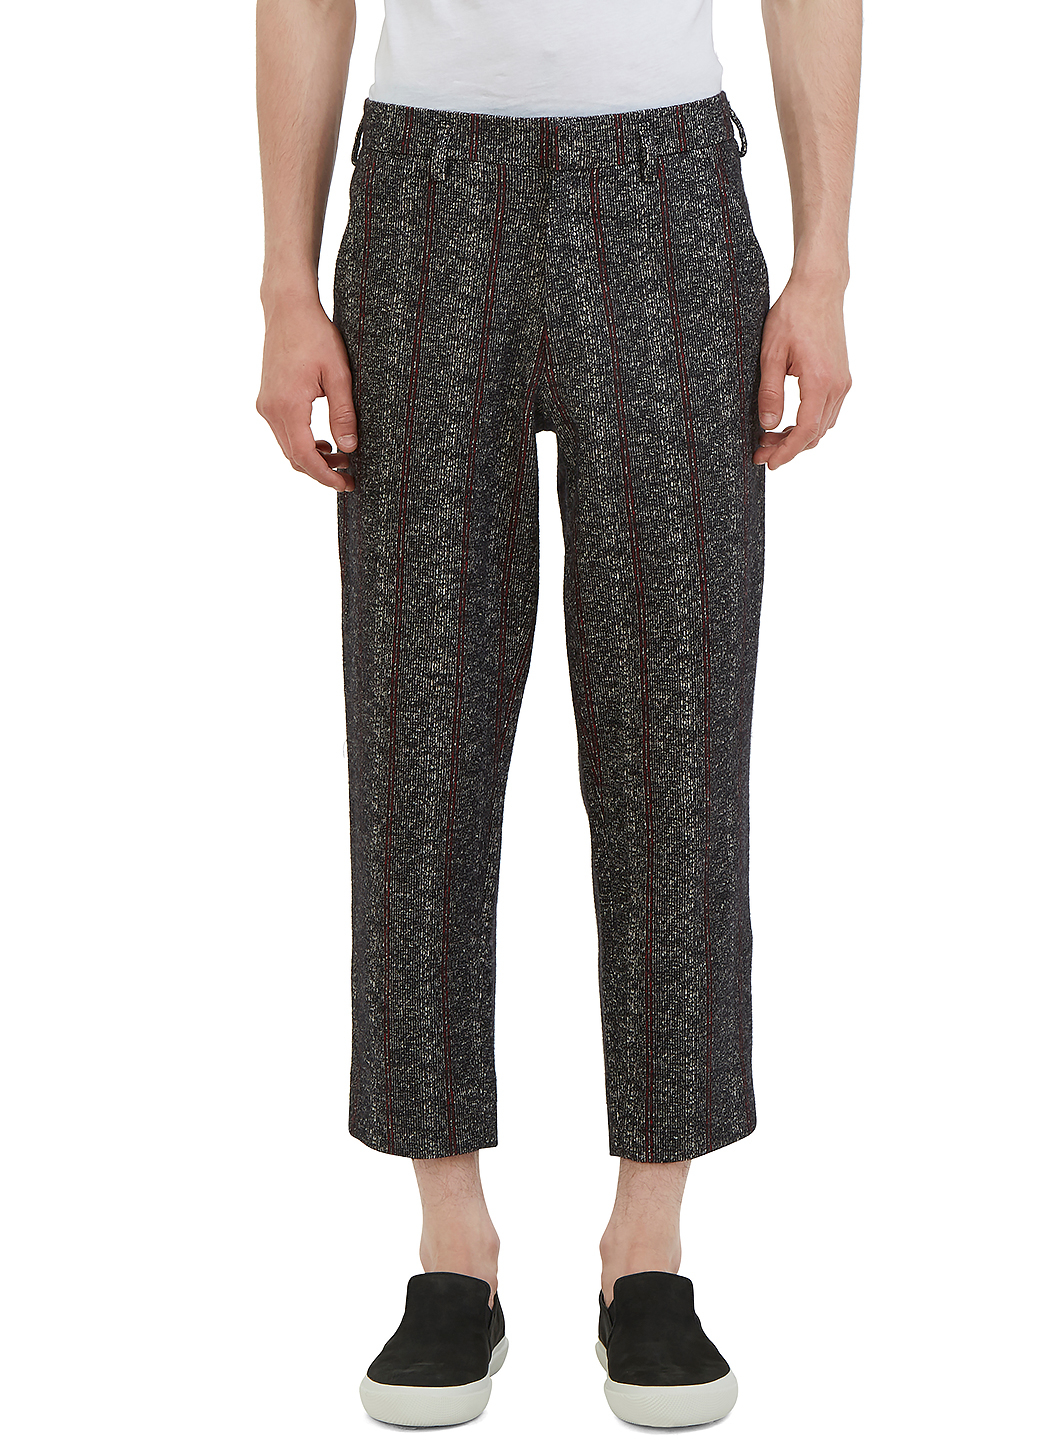 maurices Women's Patterned Wide Leg Pants Small Black Combo Wide Leg Trousers. newuz.tkateText. Giambattista Valli – Patterned Wide-leg Pants Grey – Lyst. Women's Red Diamond Tribal Patterned Wide Leg Leggings – Wide-leg-pants. Charlotte Russe Pants – Patterned wide-leg pants.